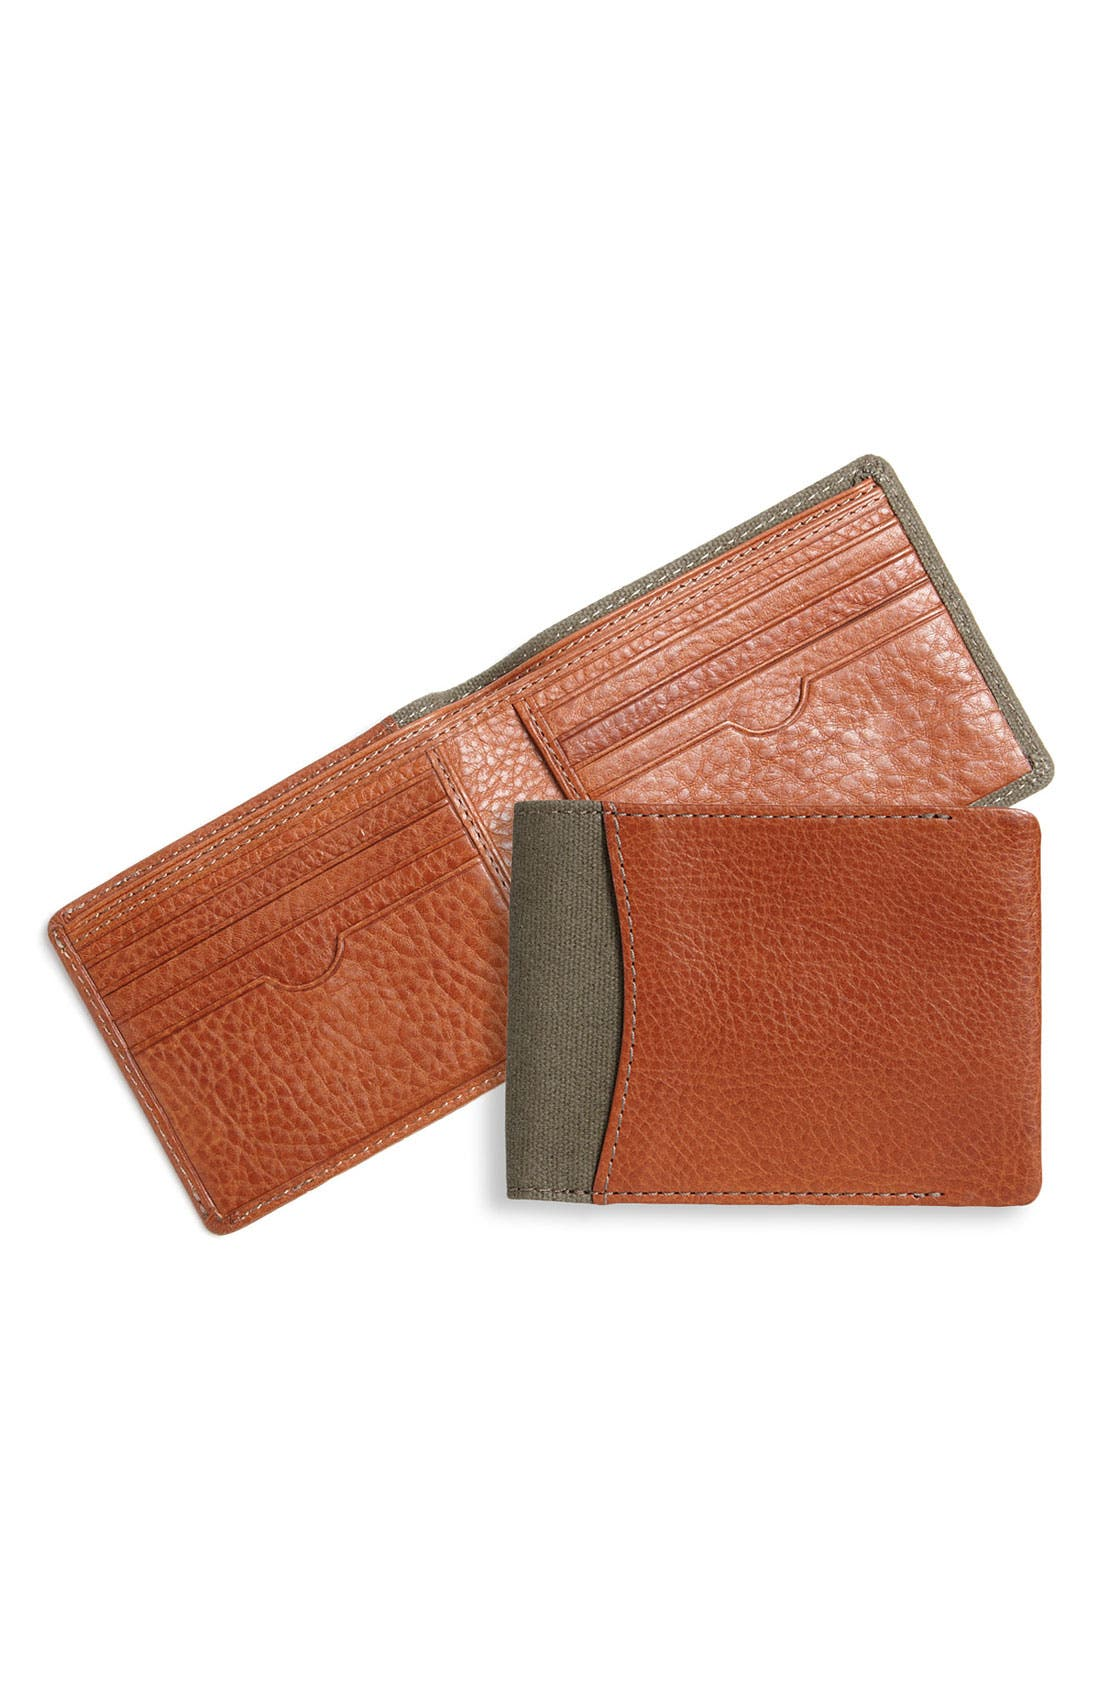 Alternate Image 1 Selected - Bosca Deluxe Executive Wallet